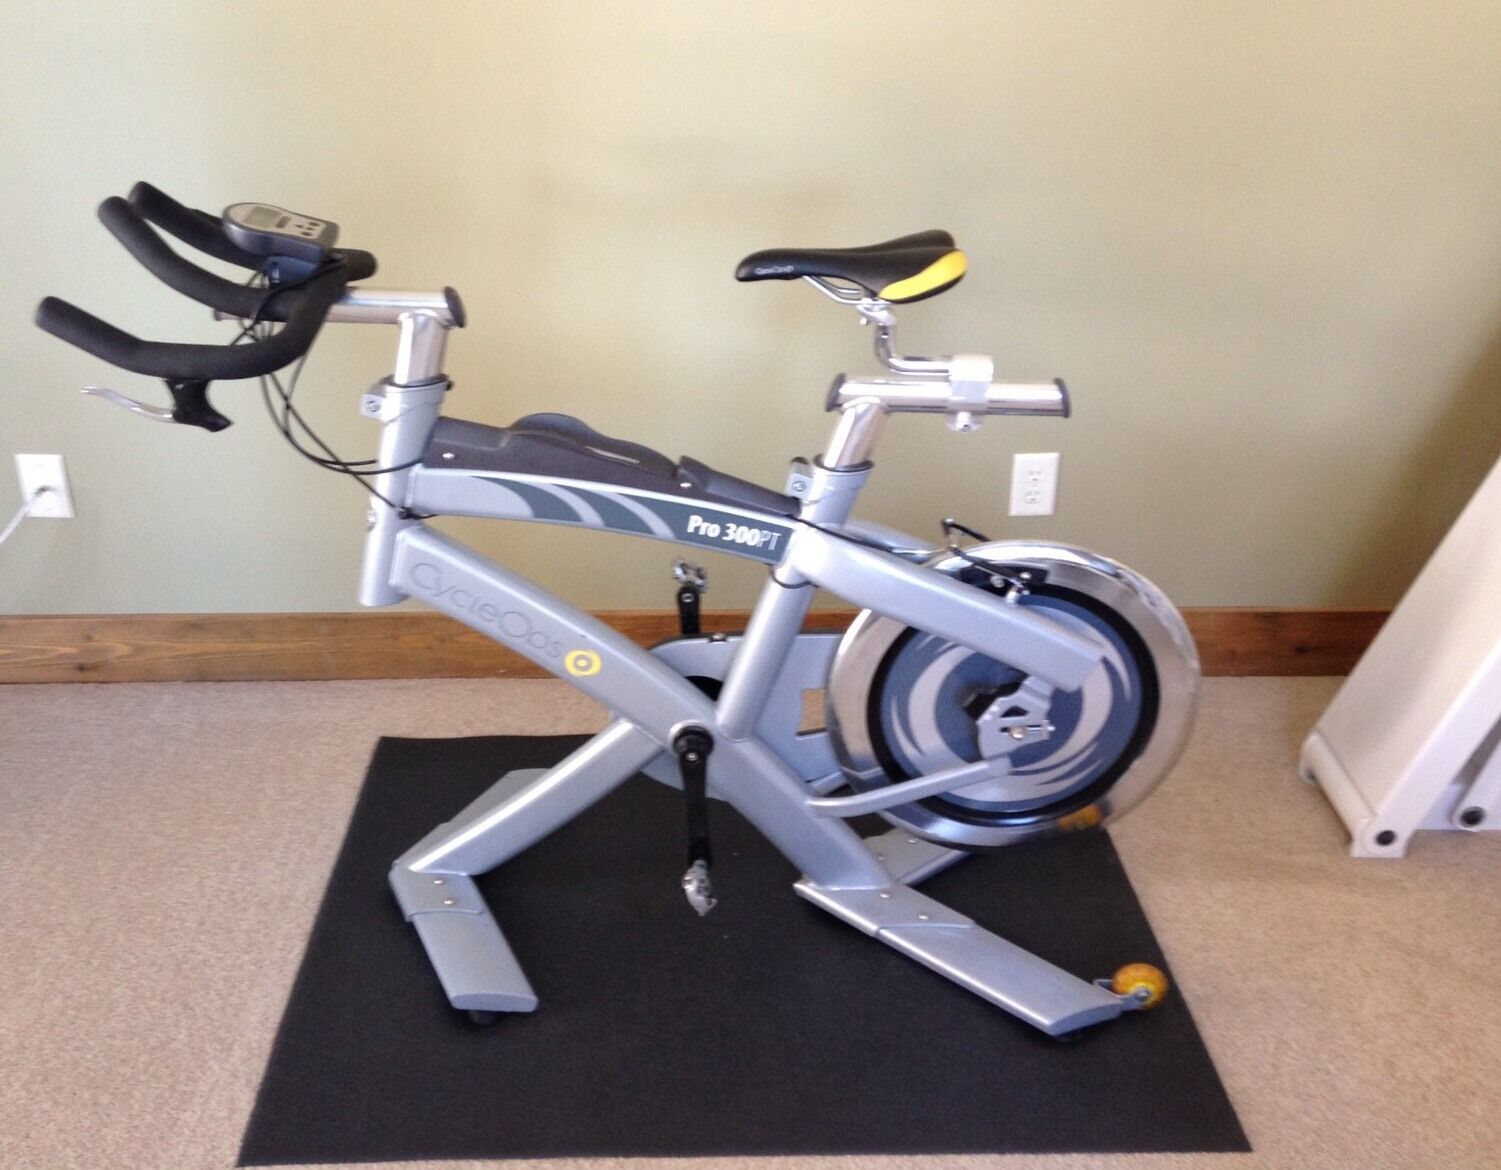 CycleOps Pro 300PT Indoor Cardio Stationary Spin Training Exercise Bike